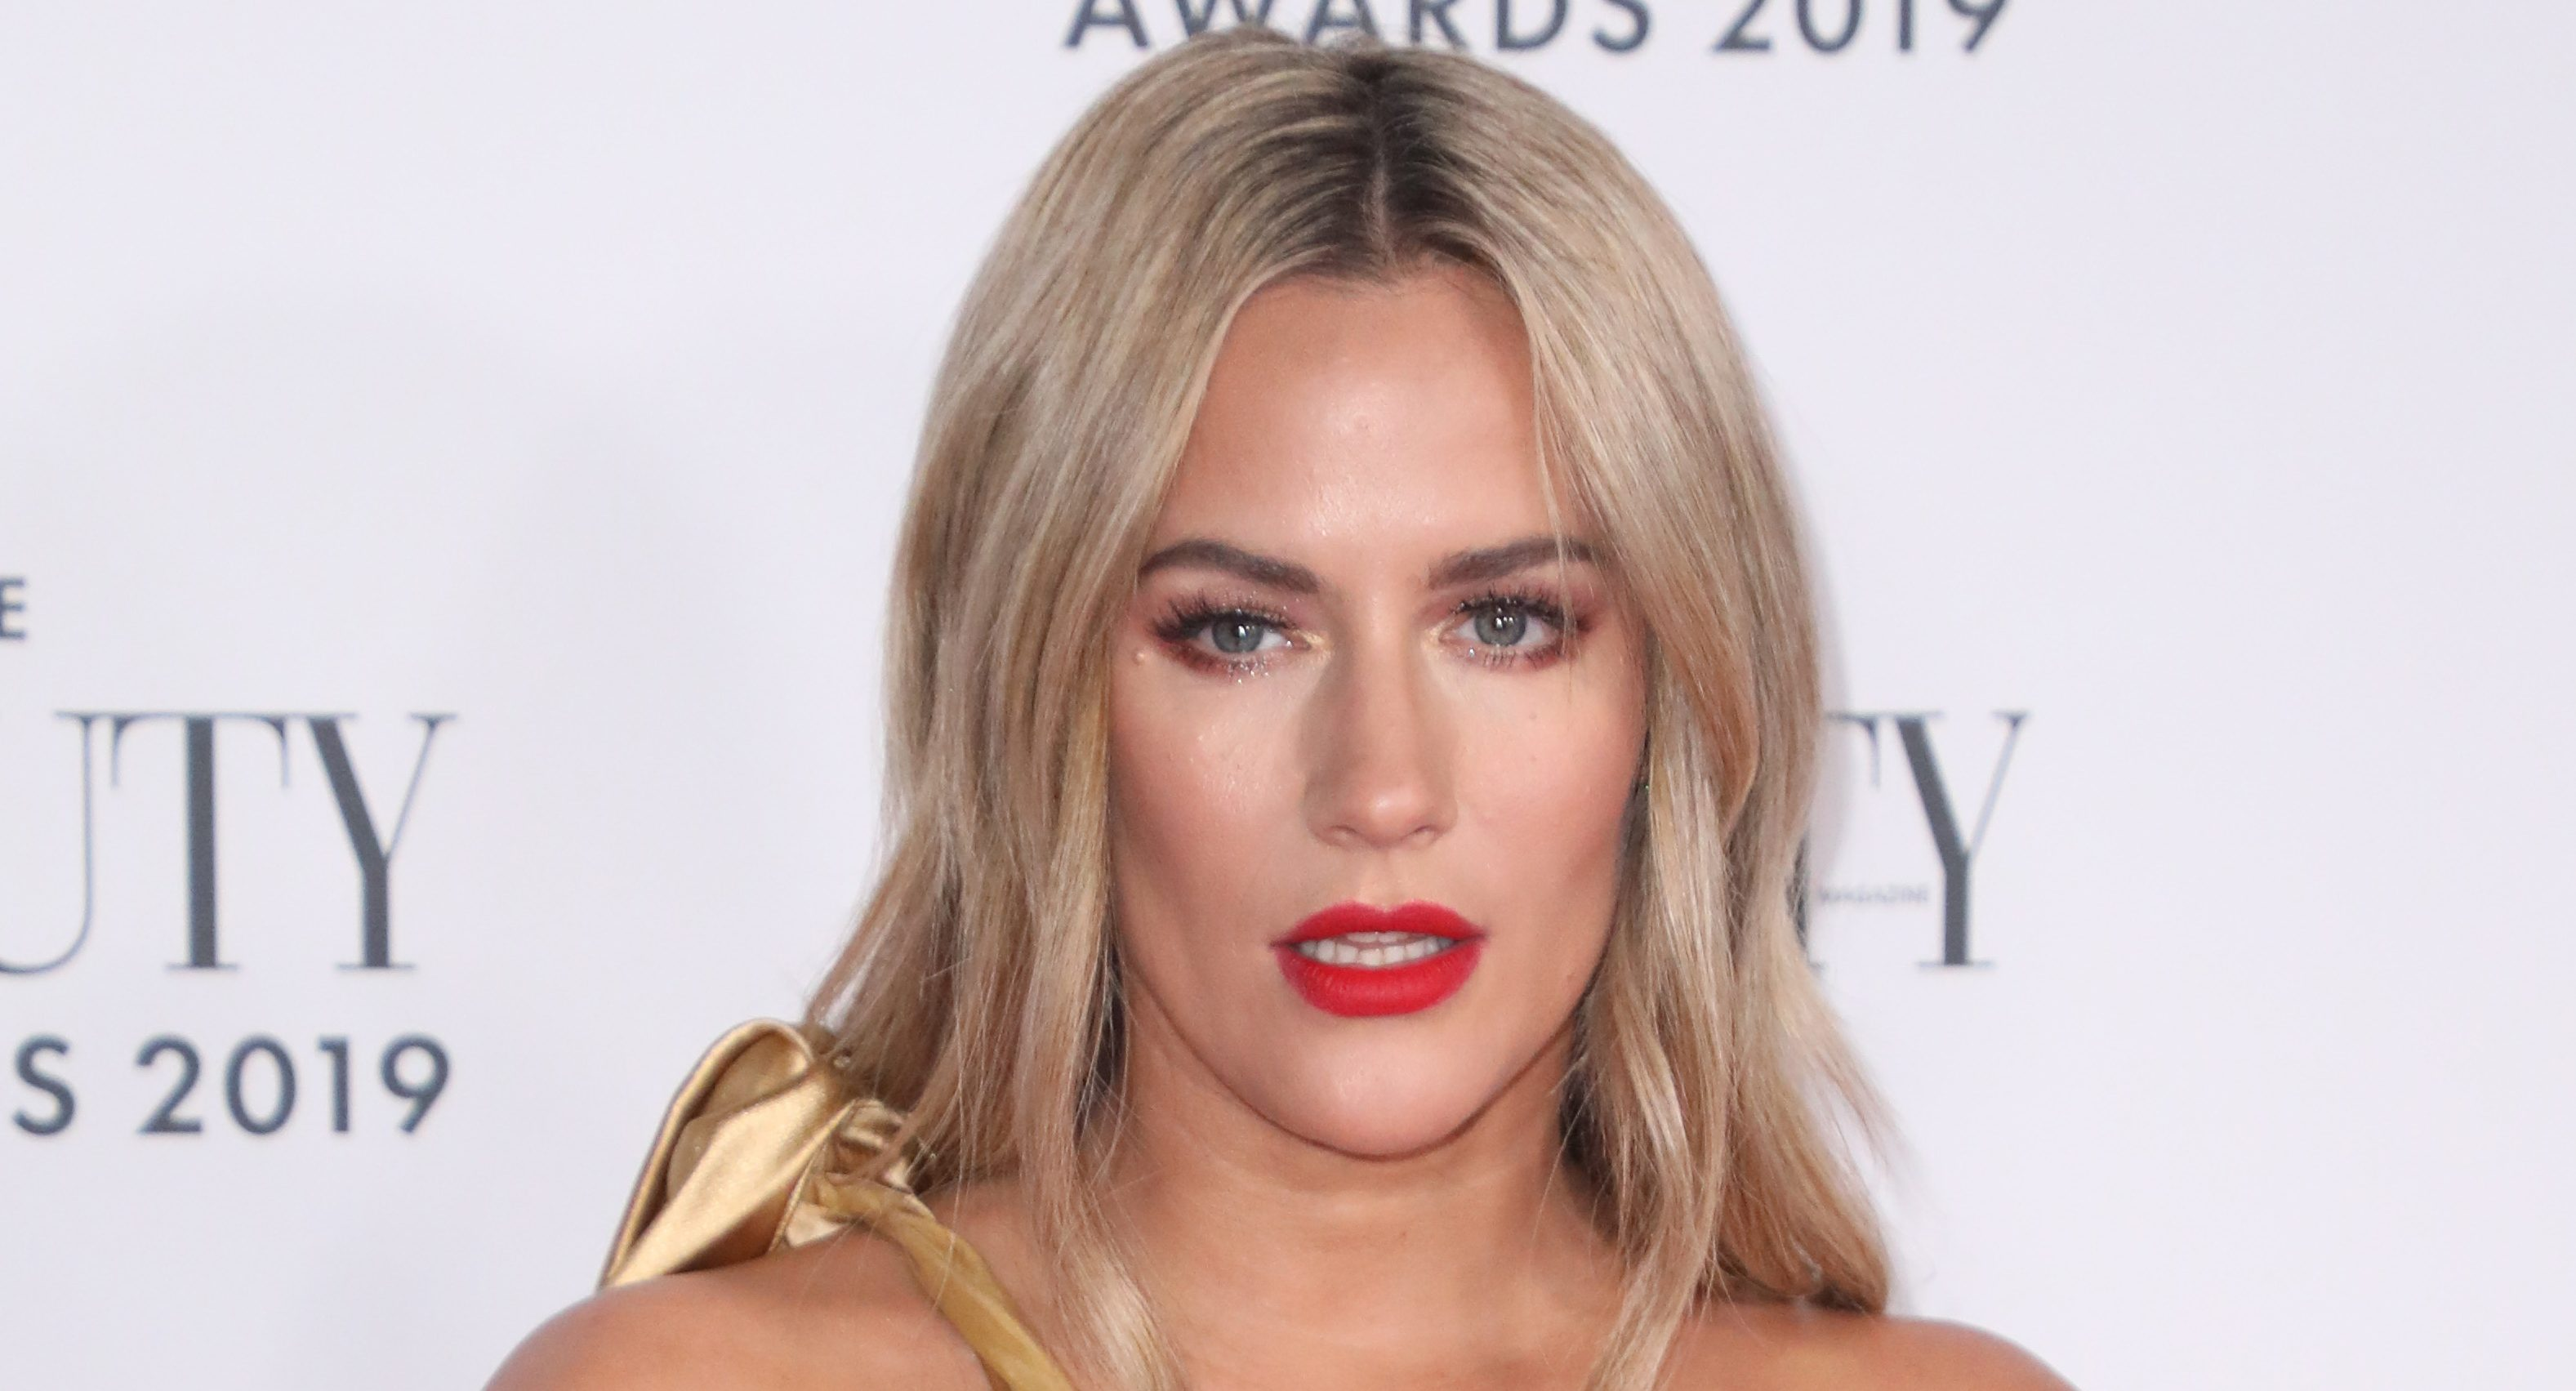 Caroline Flack has been found dead, age 40